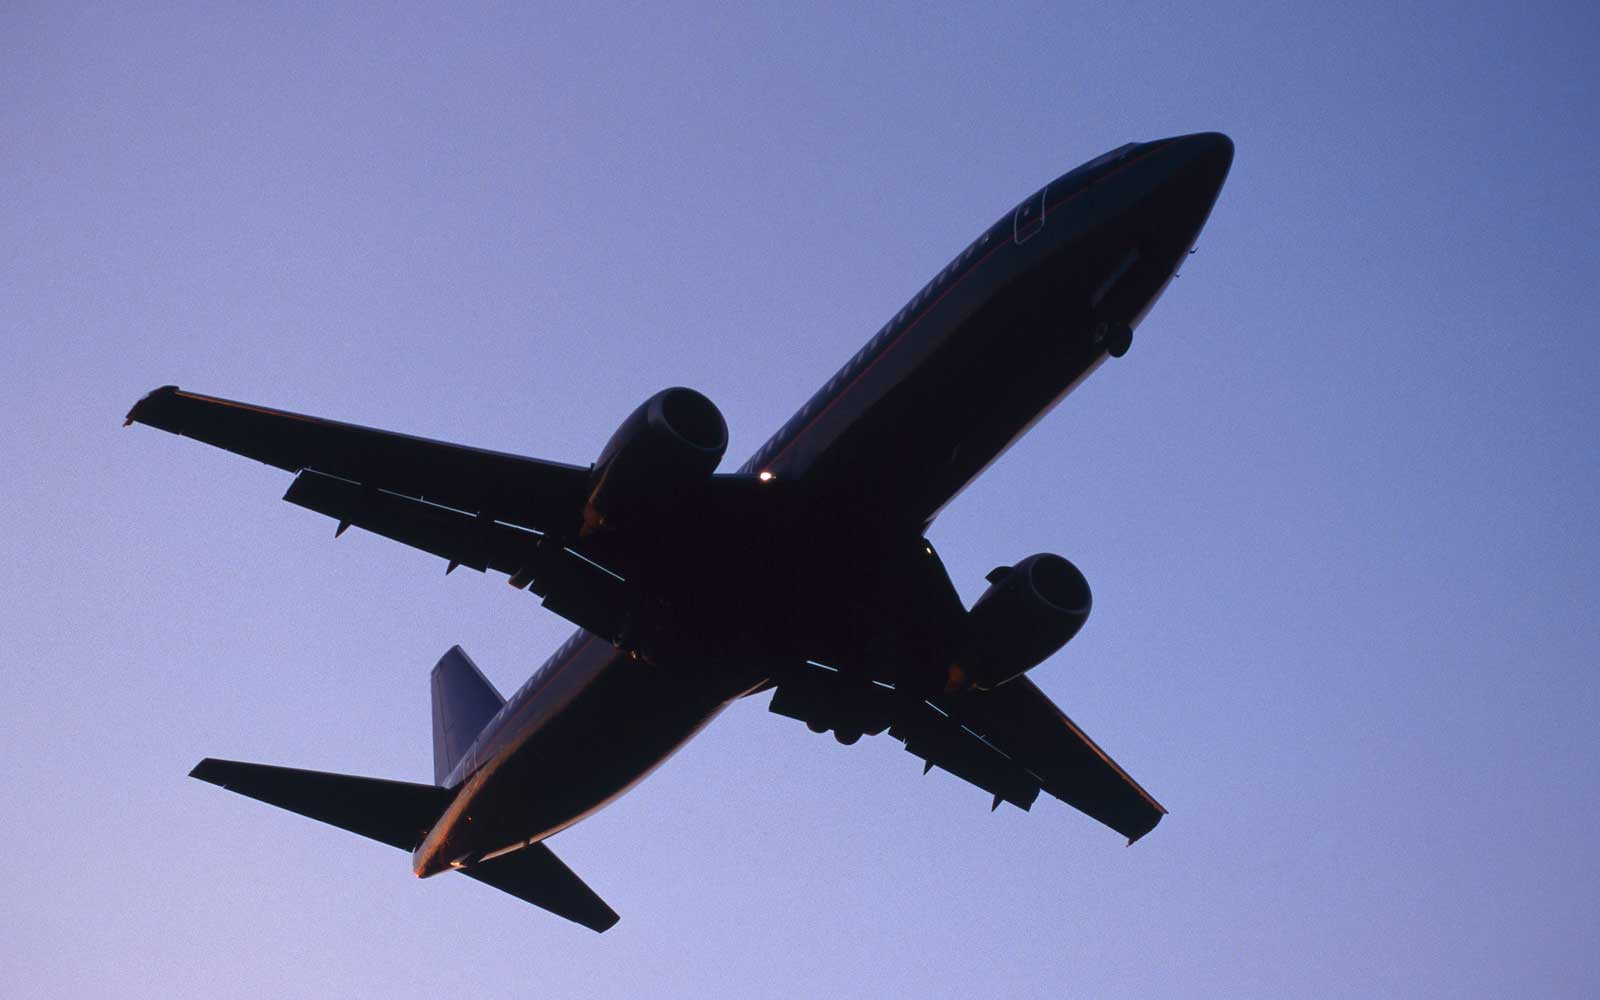 Boeing plane in the sky